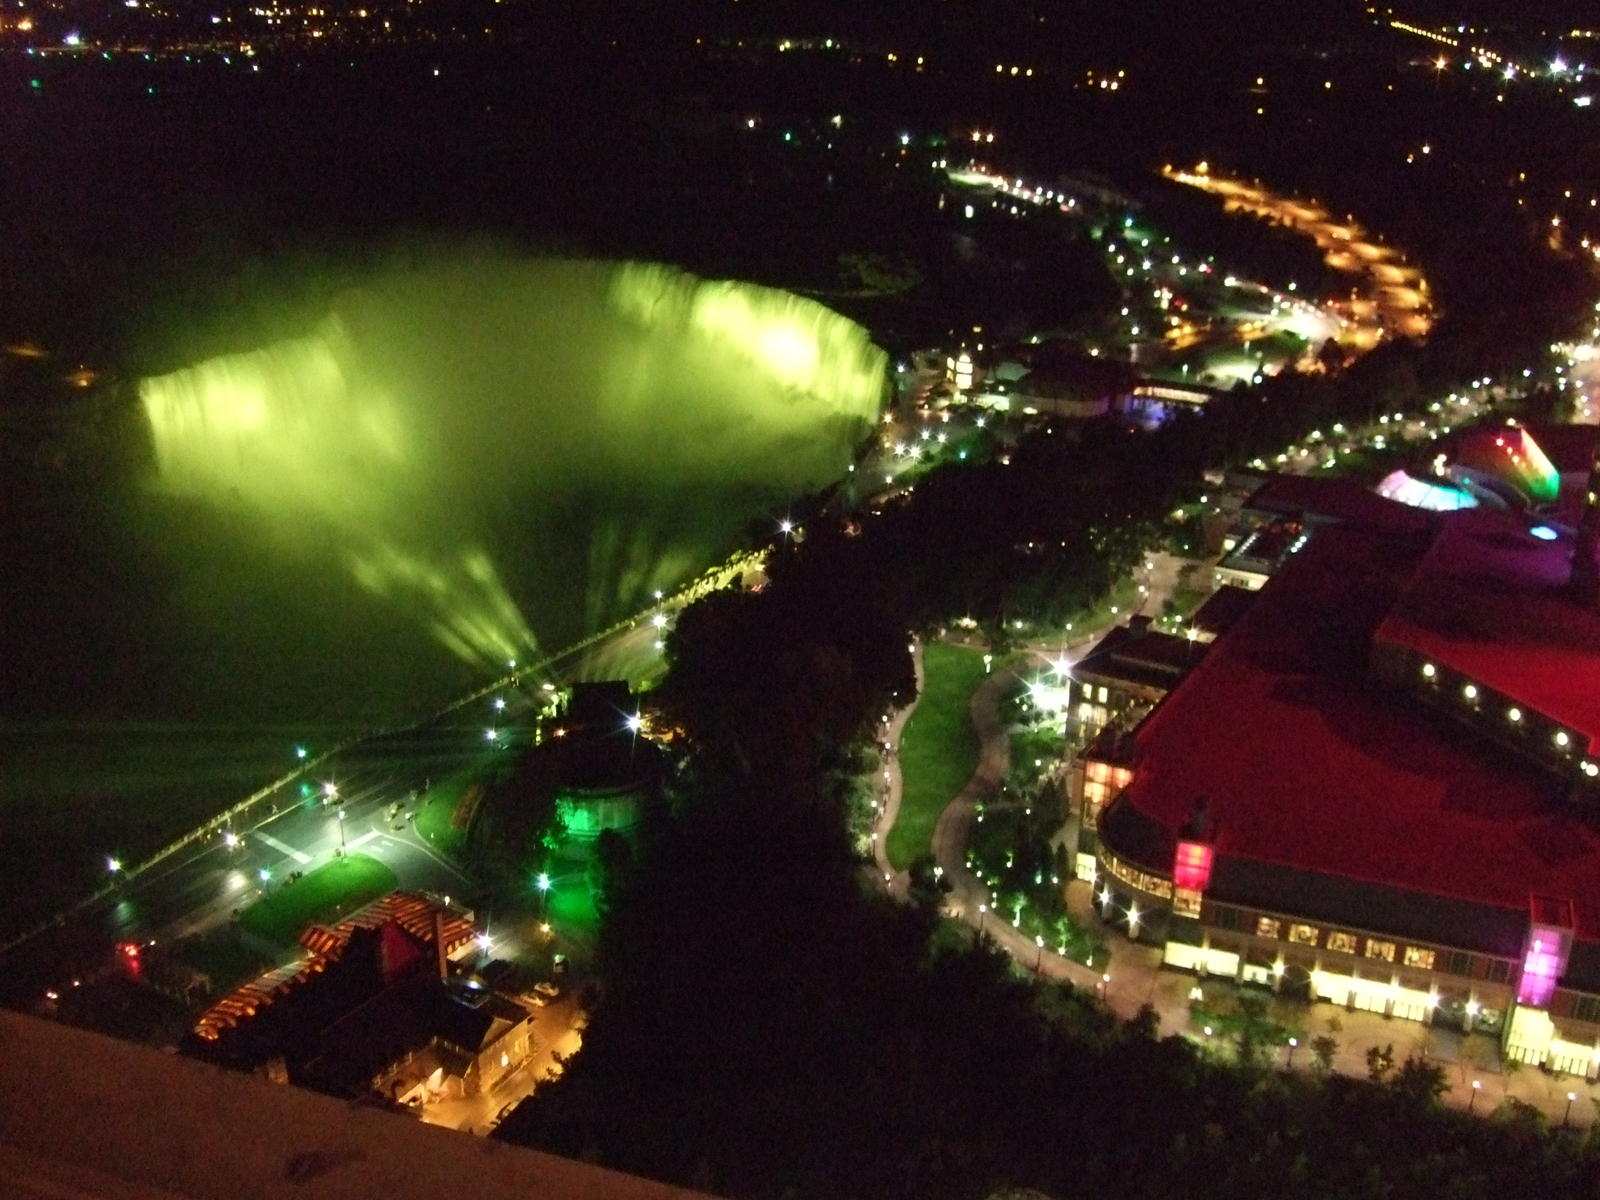 The mighty horse Shoe falls at night from the tower.